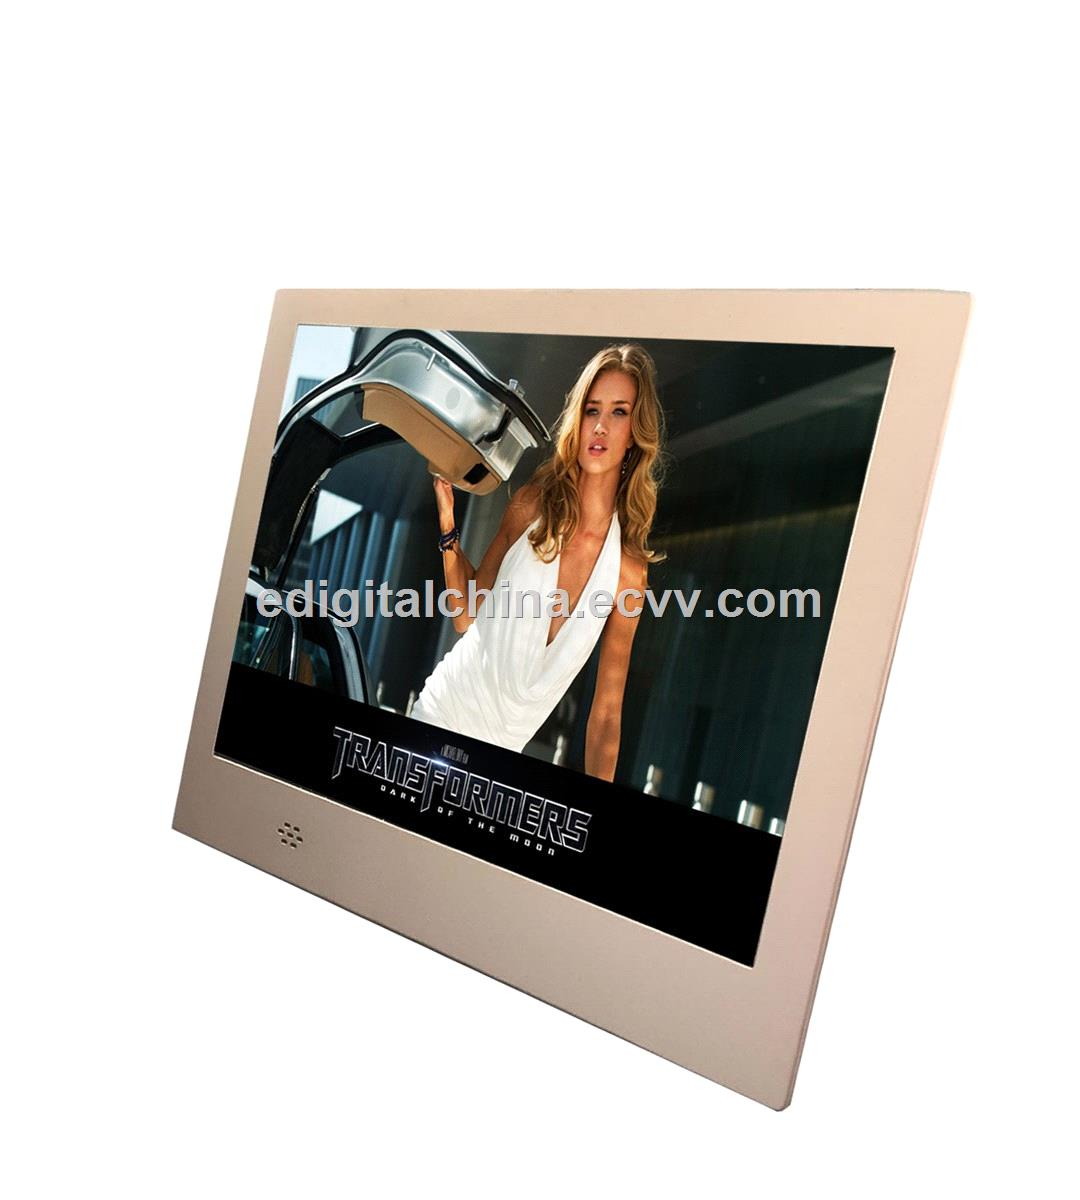 8 Inch Slim Metal Digital Photo Frame With Media Player